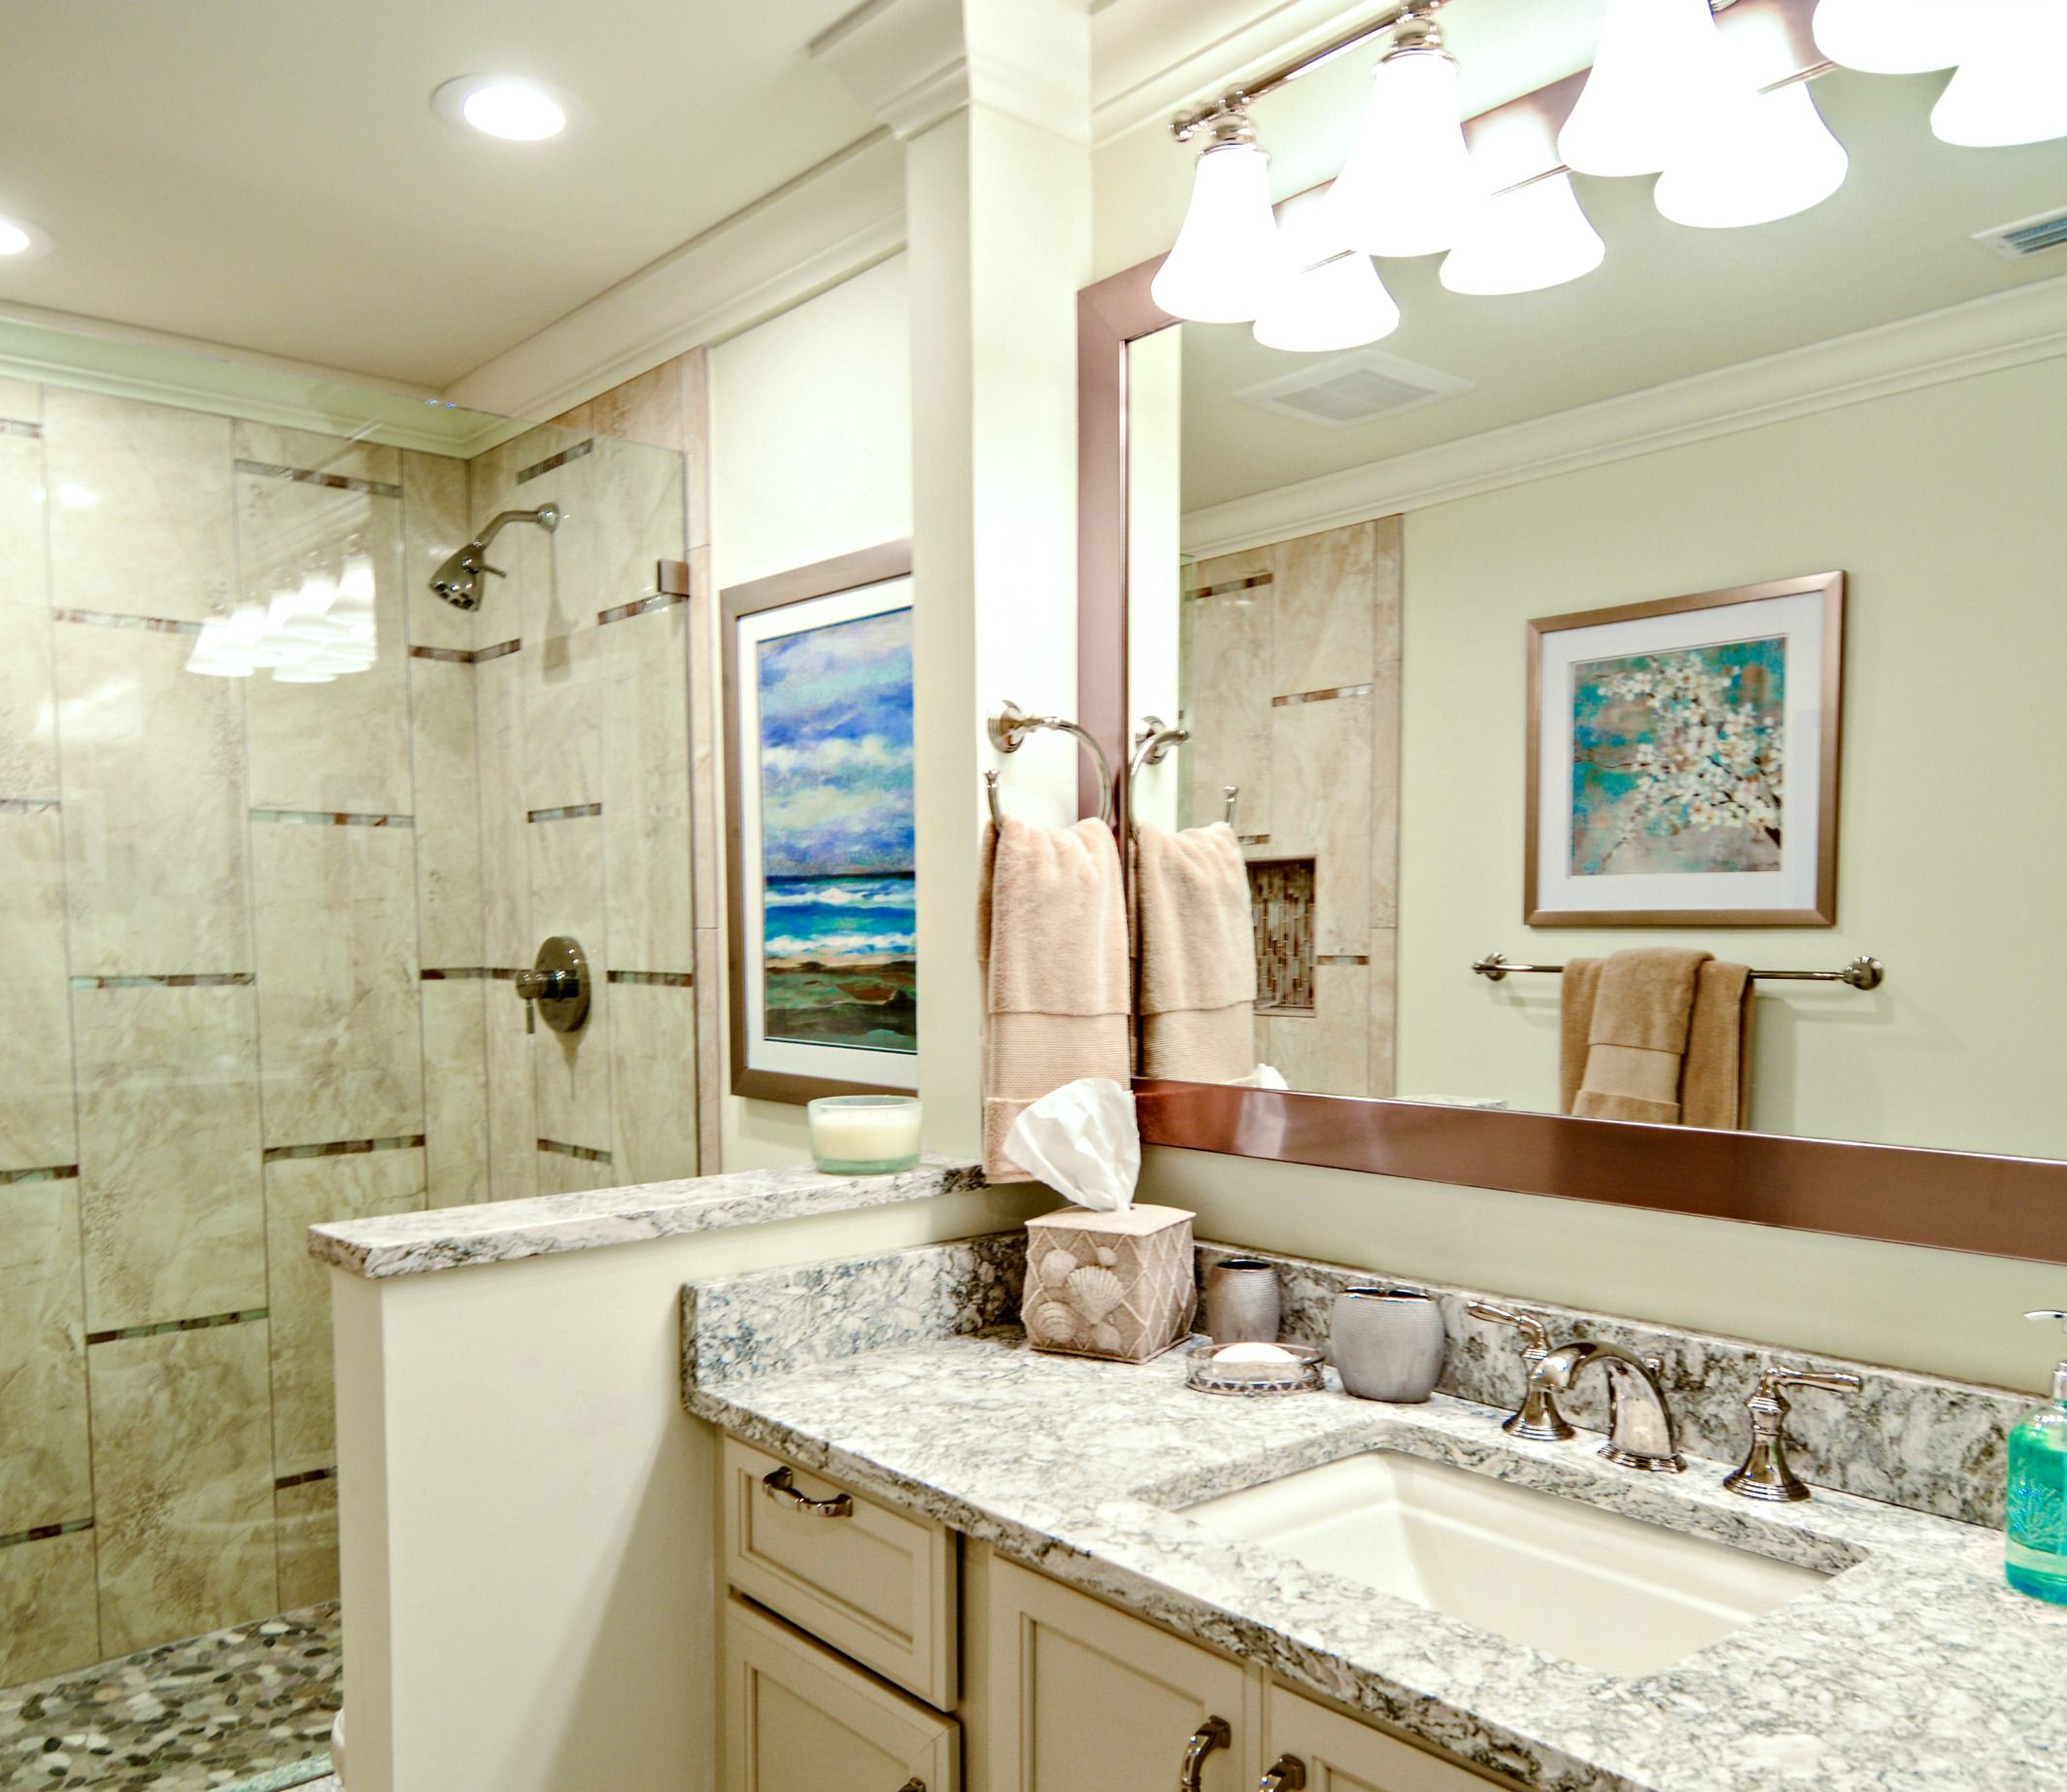 Amelia Island Bathroom Remodel By Design Line Works With Images Residential Interior Design Custom Kitchens Design Interior Design Services